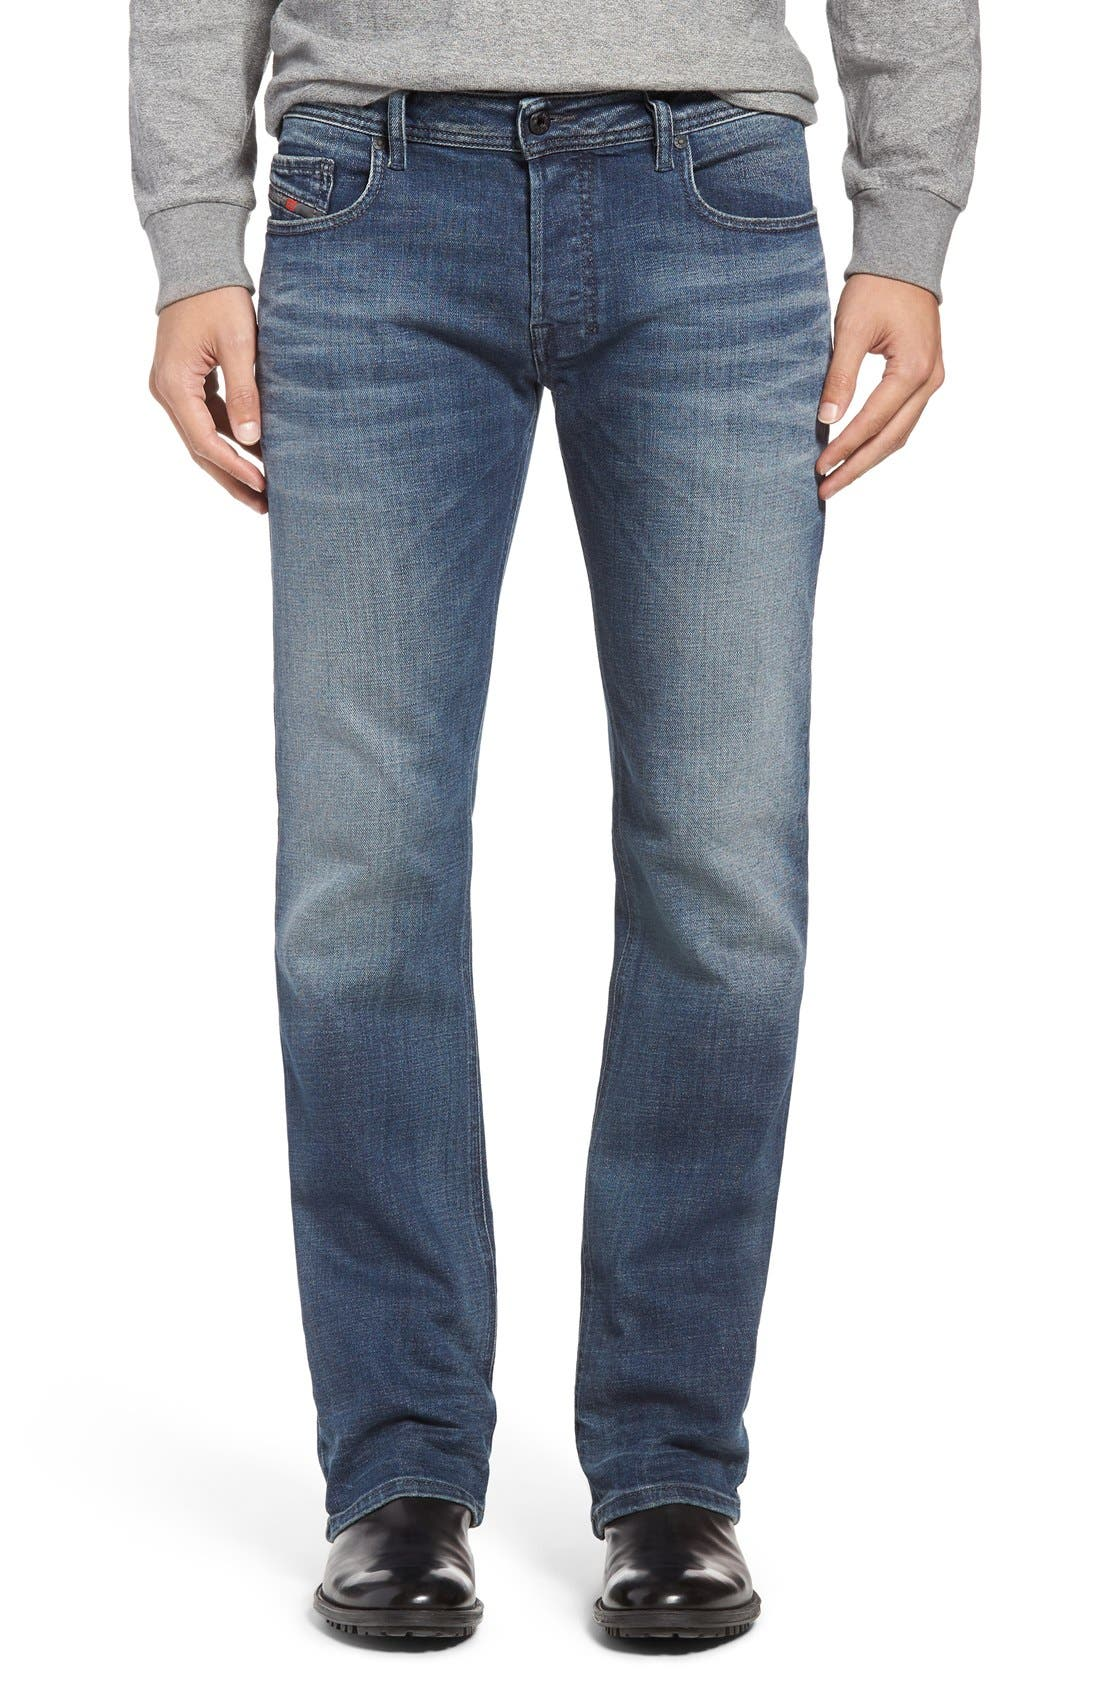 Zatiny Bootcut Jeans,                         Main,                         color, 857N